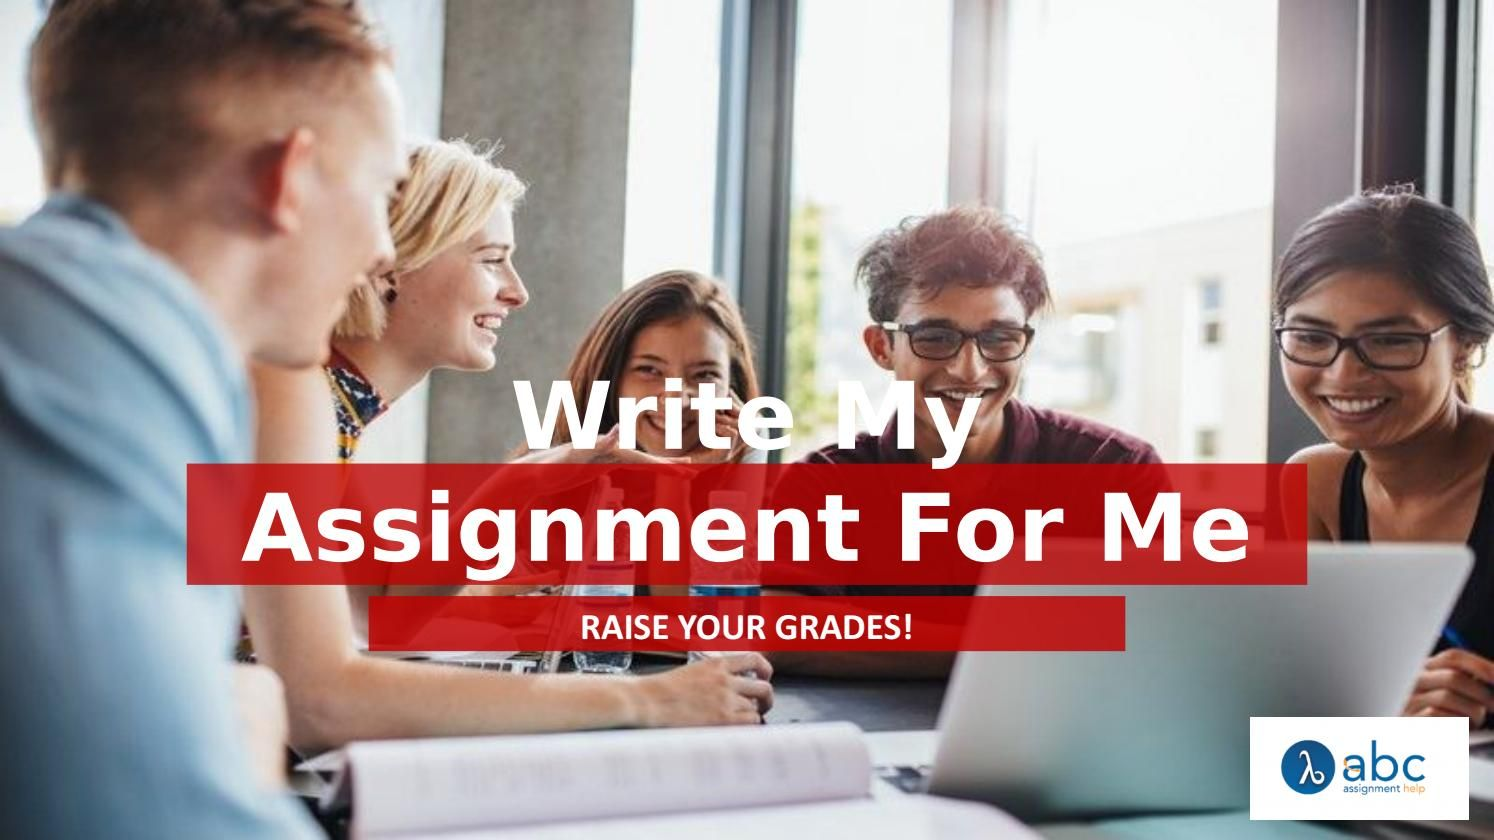 write assignment for me